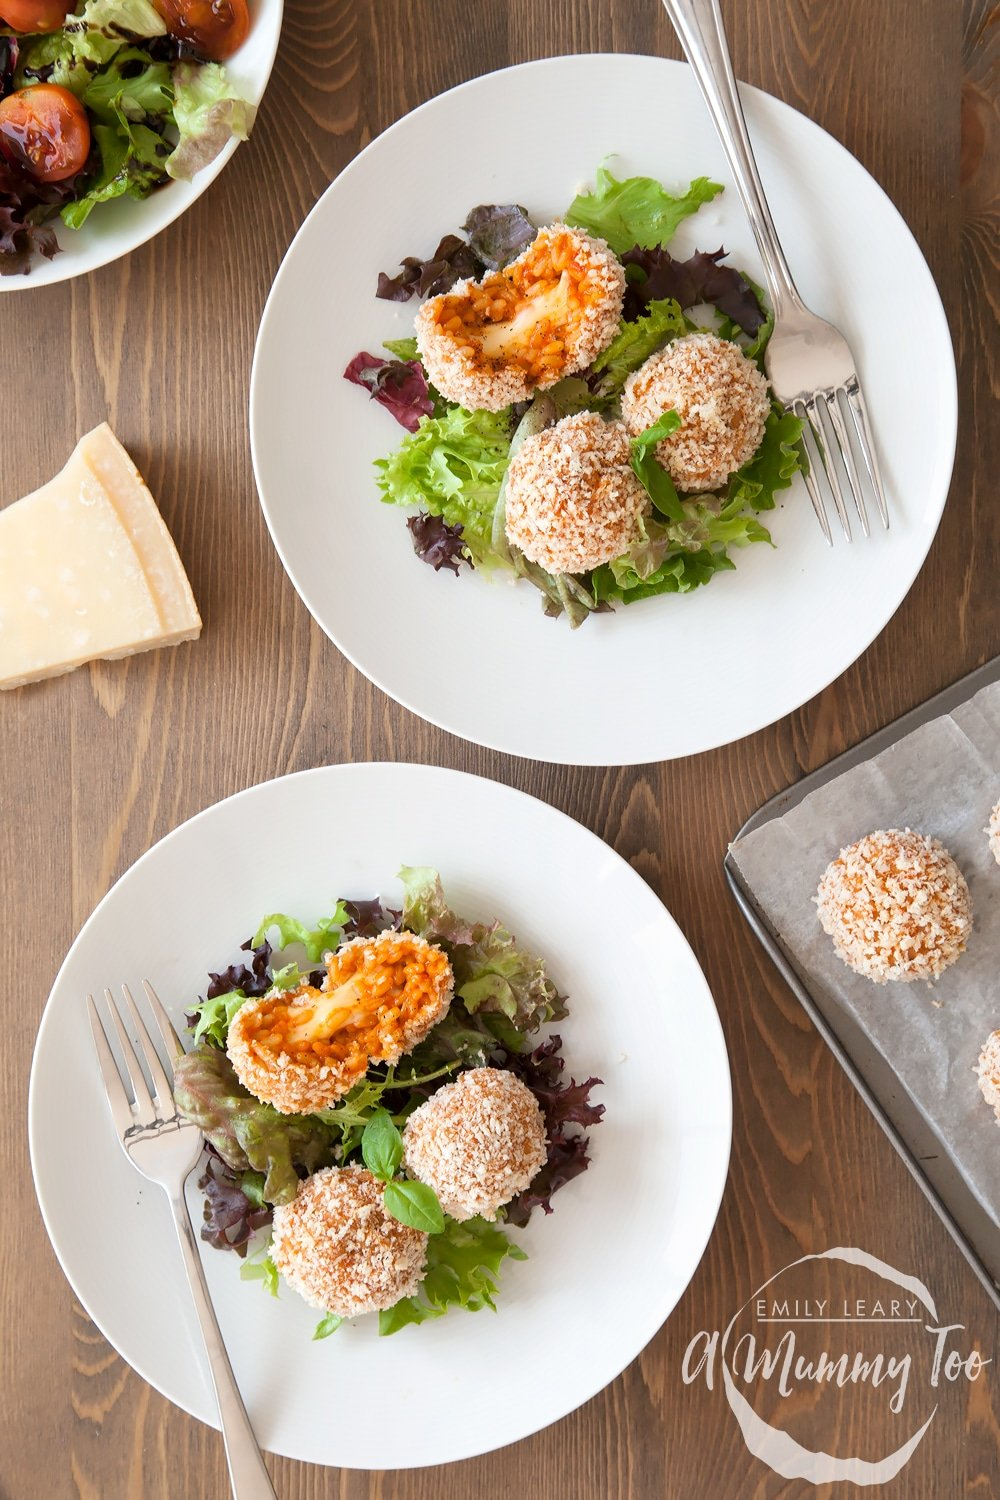 Easy tomato risotto balls with a smoked cheese centre, served with salad